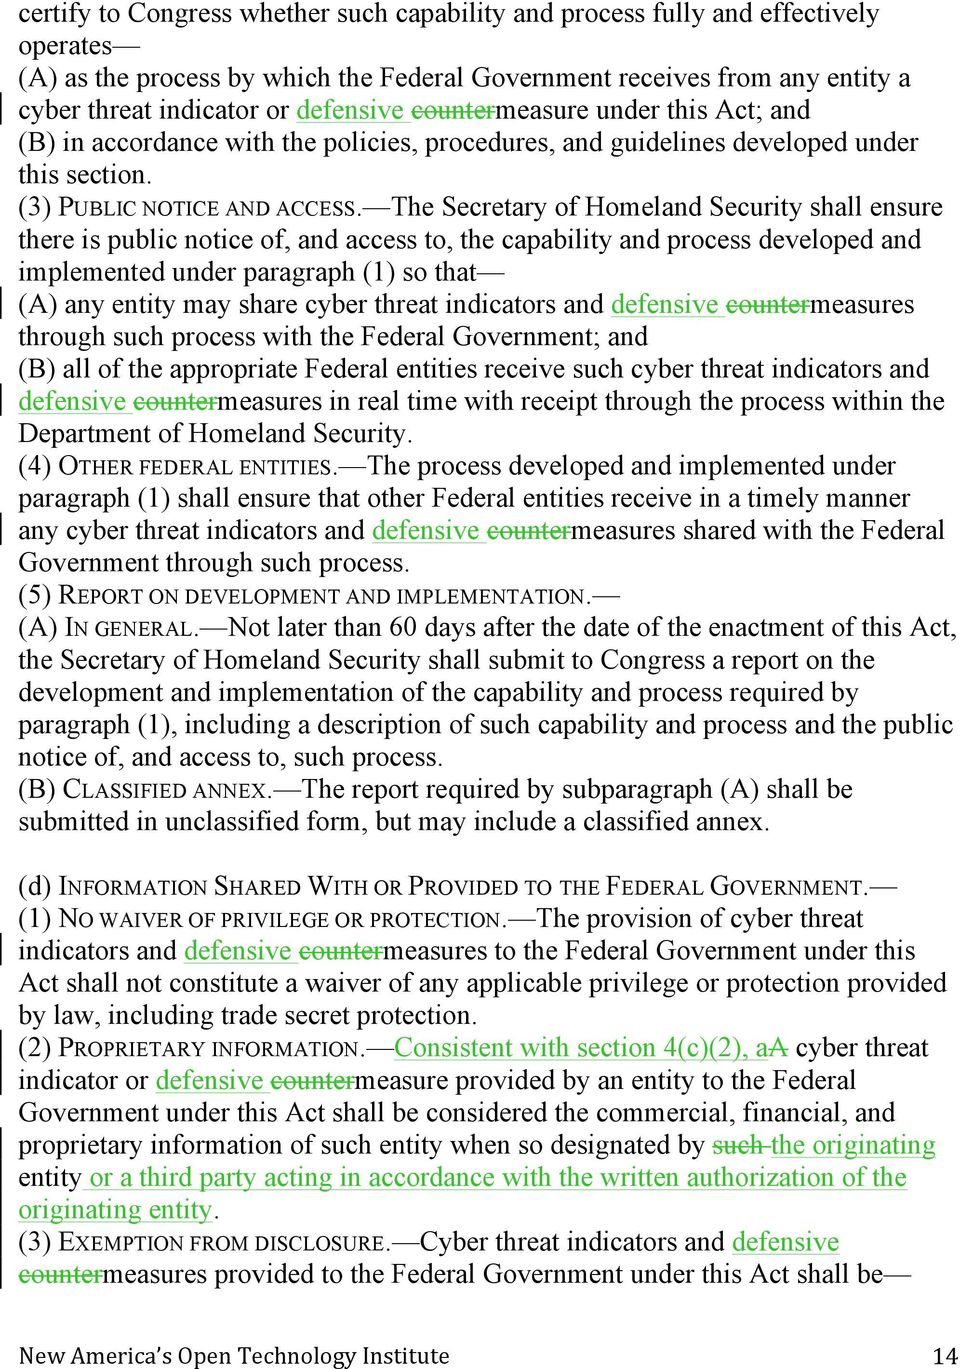 The Secretary of Homeland Security shall ensure there is public notice of, and access to, the capability and process developed and implemented under paragraph (1) so that (A) any entity may share